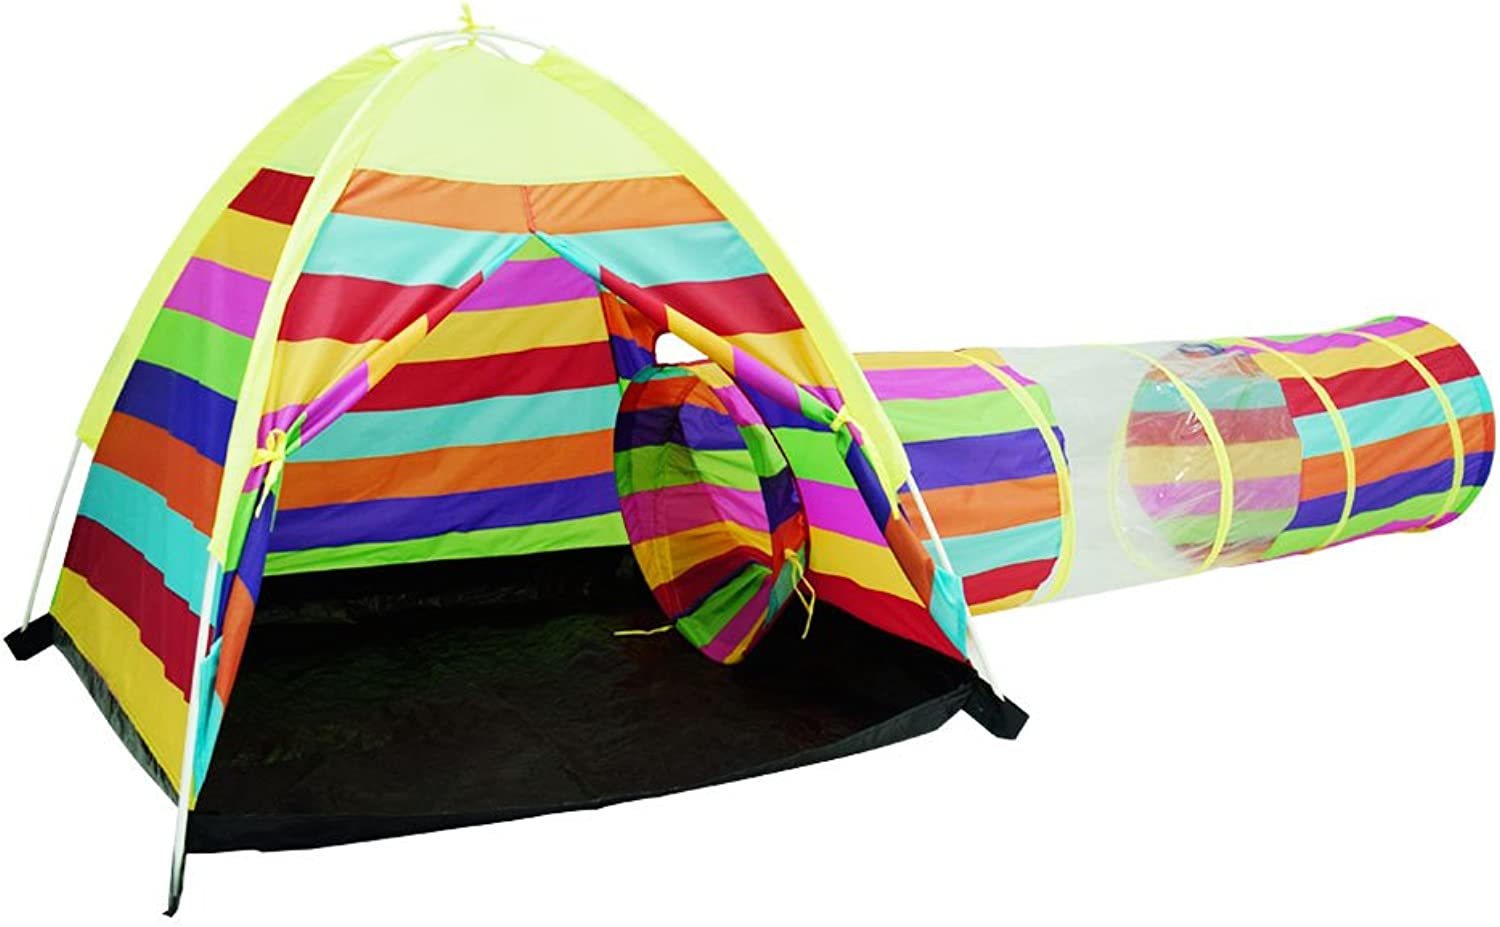 Acelane Dome Tent and Instant Tunnel Play Tent Kids Playhouse Toy Gift for Boys and Girls for Indoor and Outdoor Beach Use